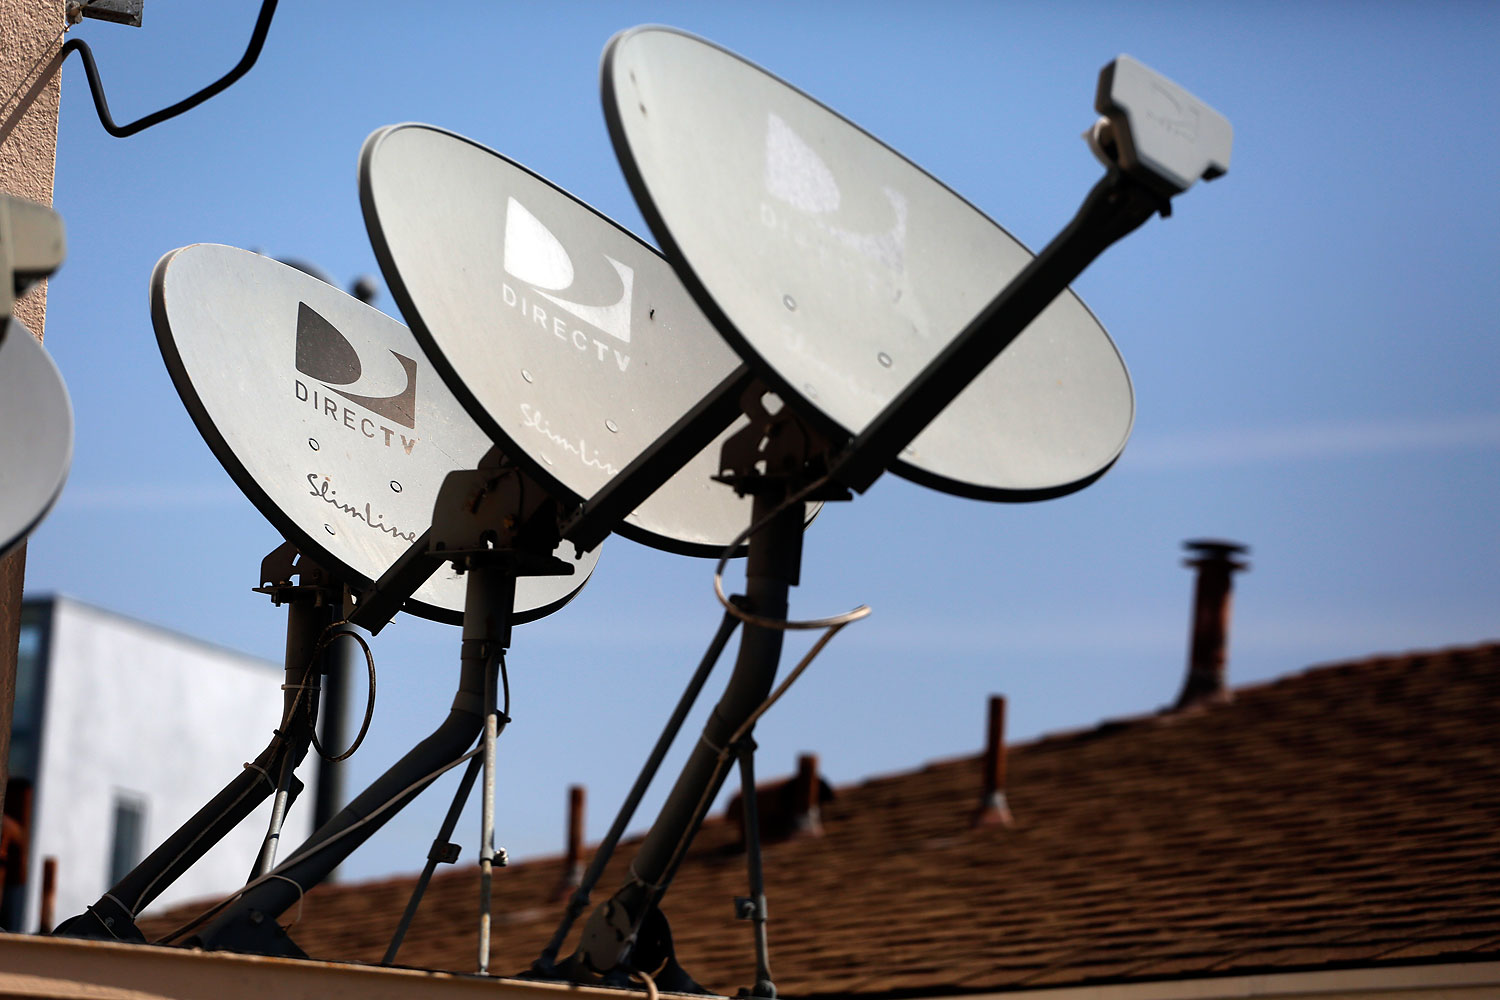 DirecTV satellite dishes are seen on an apartment roof in Los Angeles, May 18, 2014.